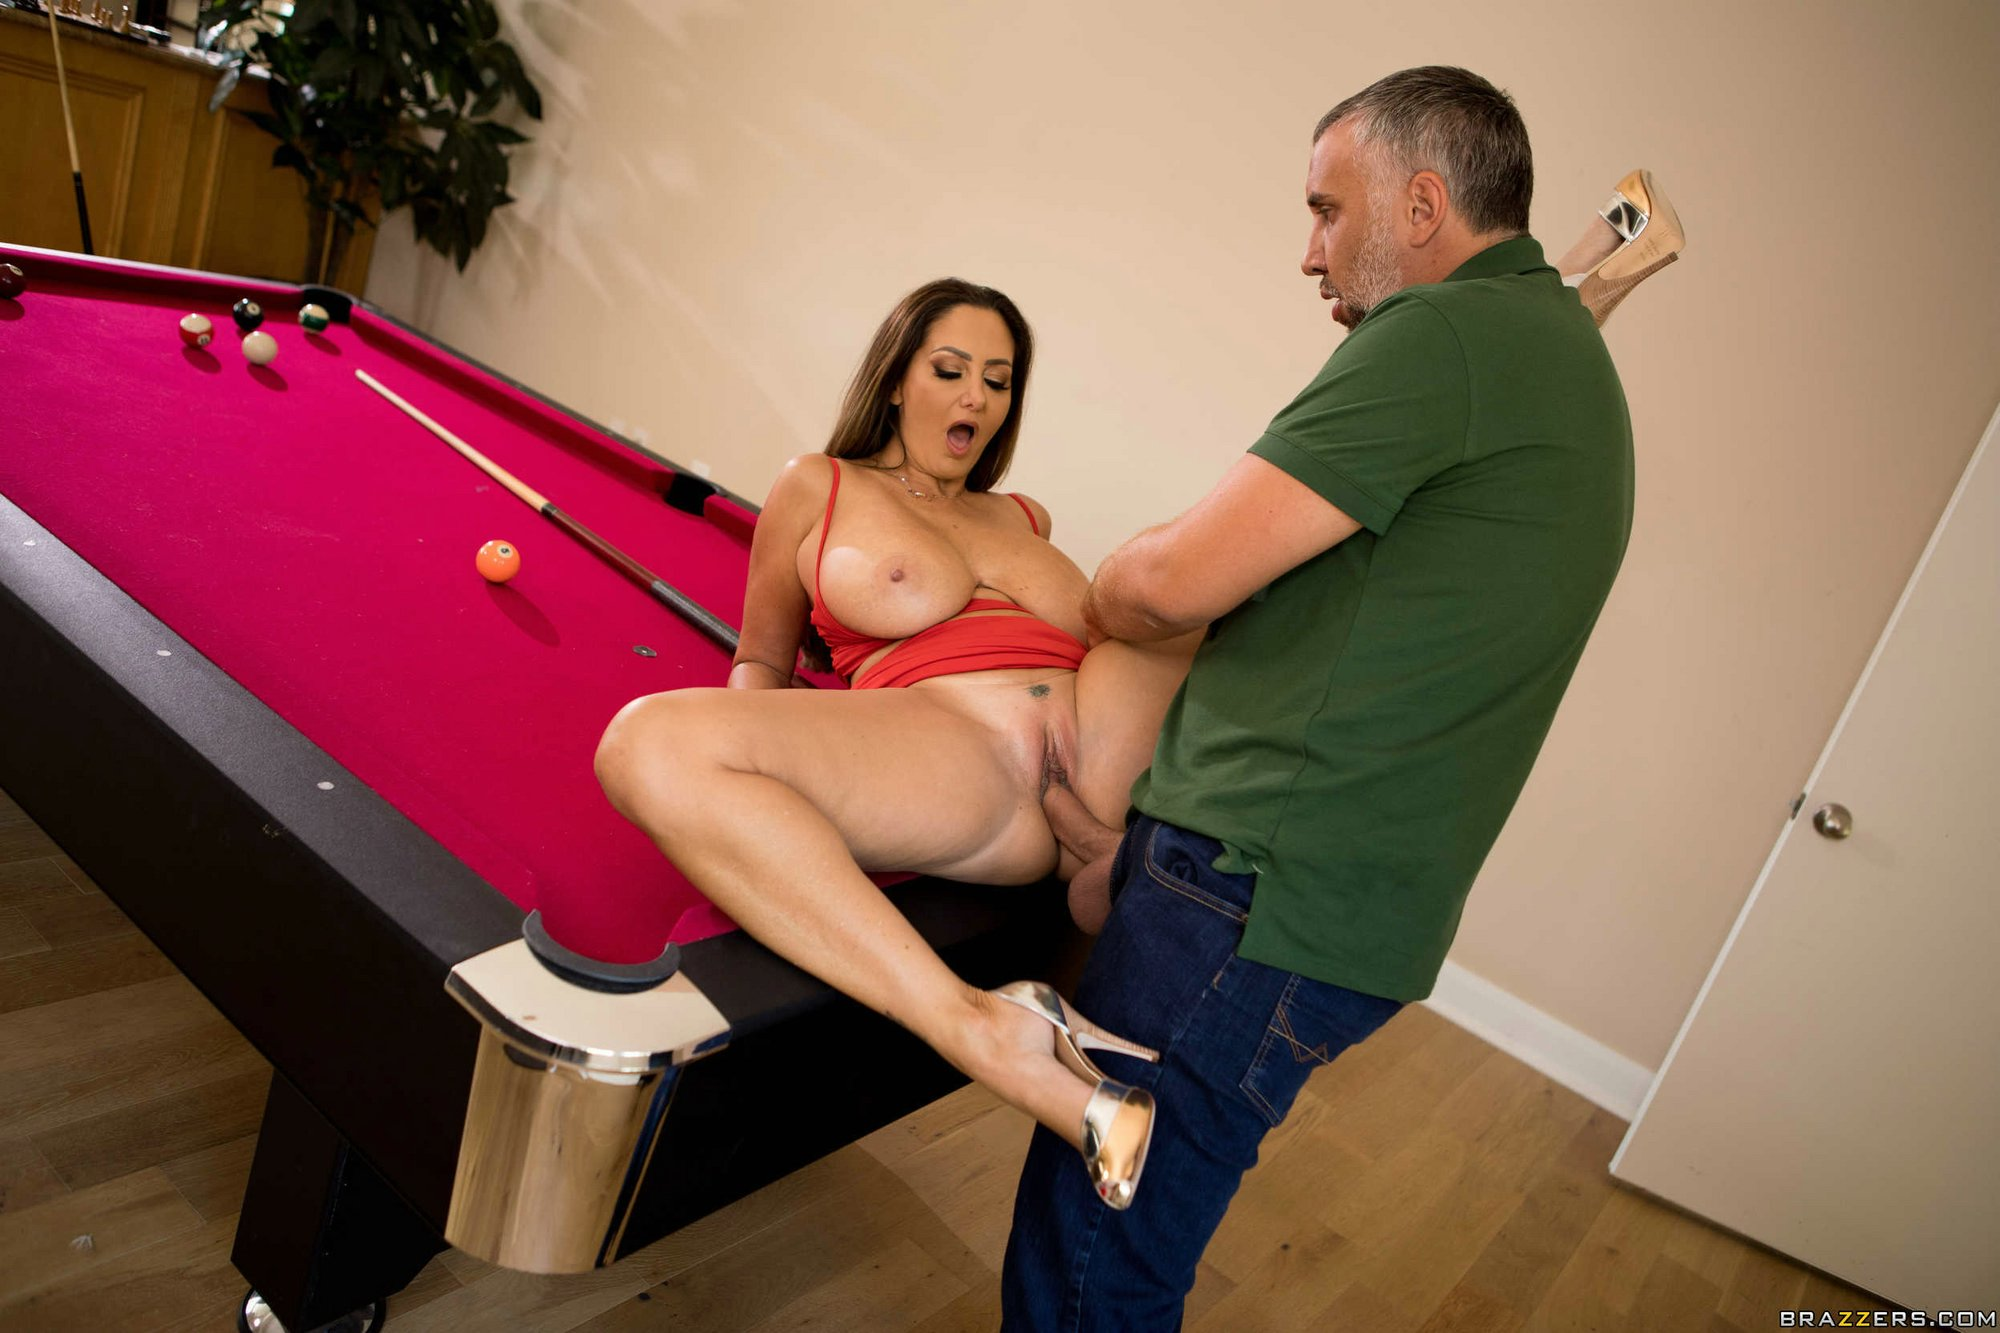 Fatty blonde milf gets fucked on the pool table and facialized